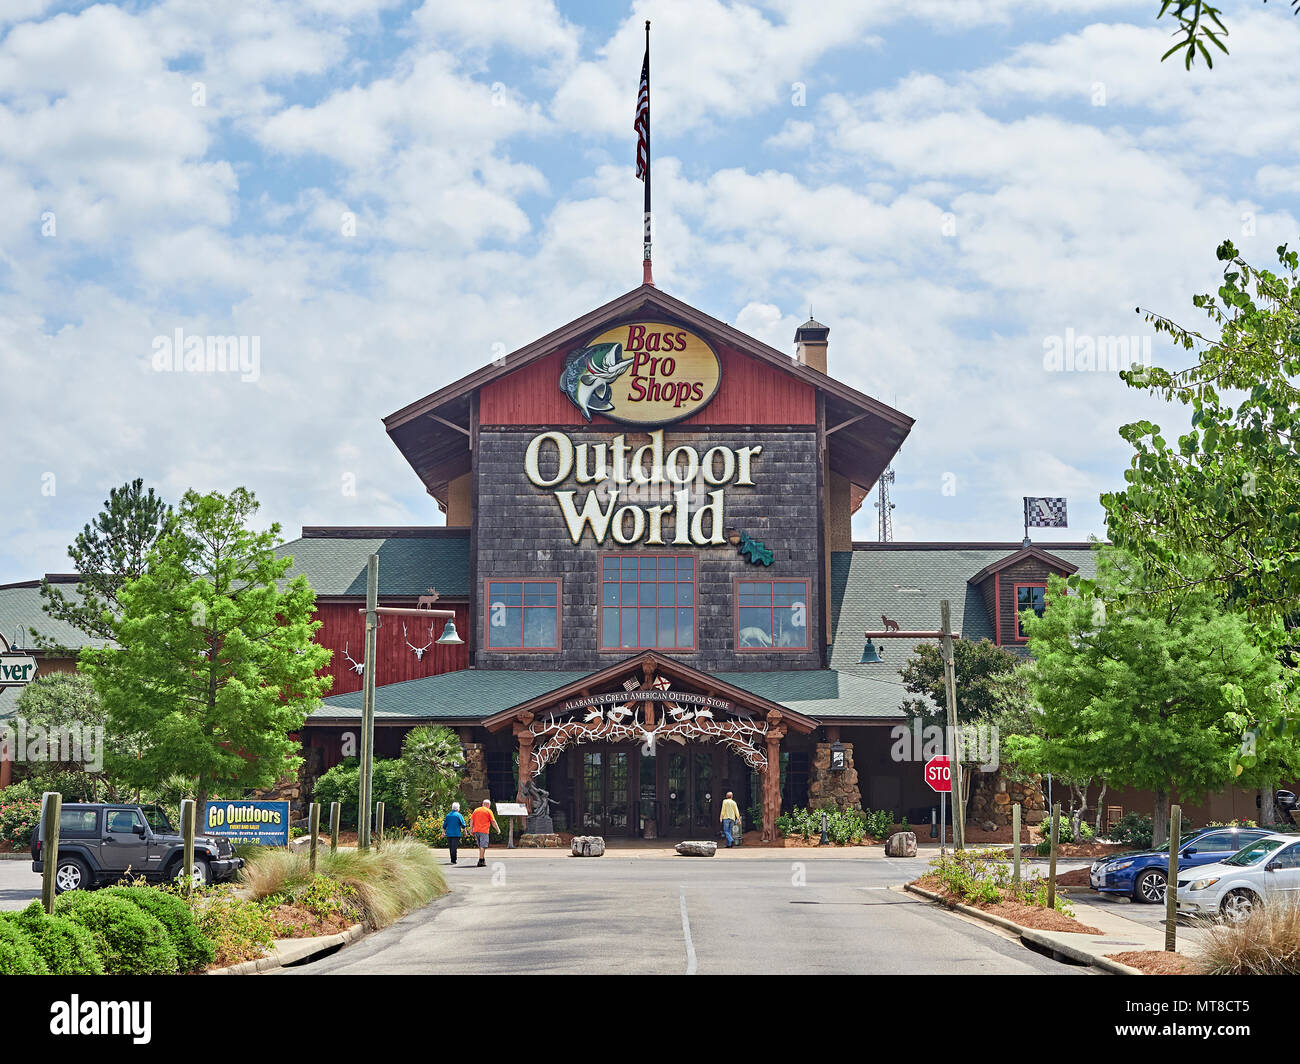 Bass Pro Shops Outdoor World front exterior entrance of the mega sized camping, hunting, fishing, and boating store or business in Prattville Alabama. - Stock Image